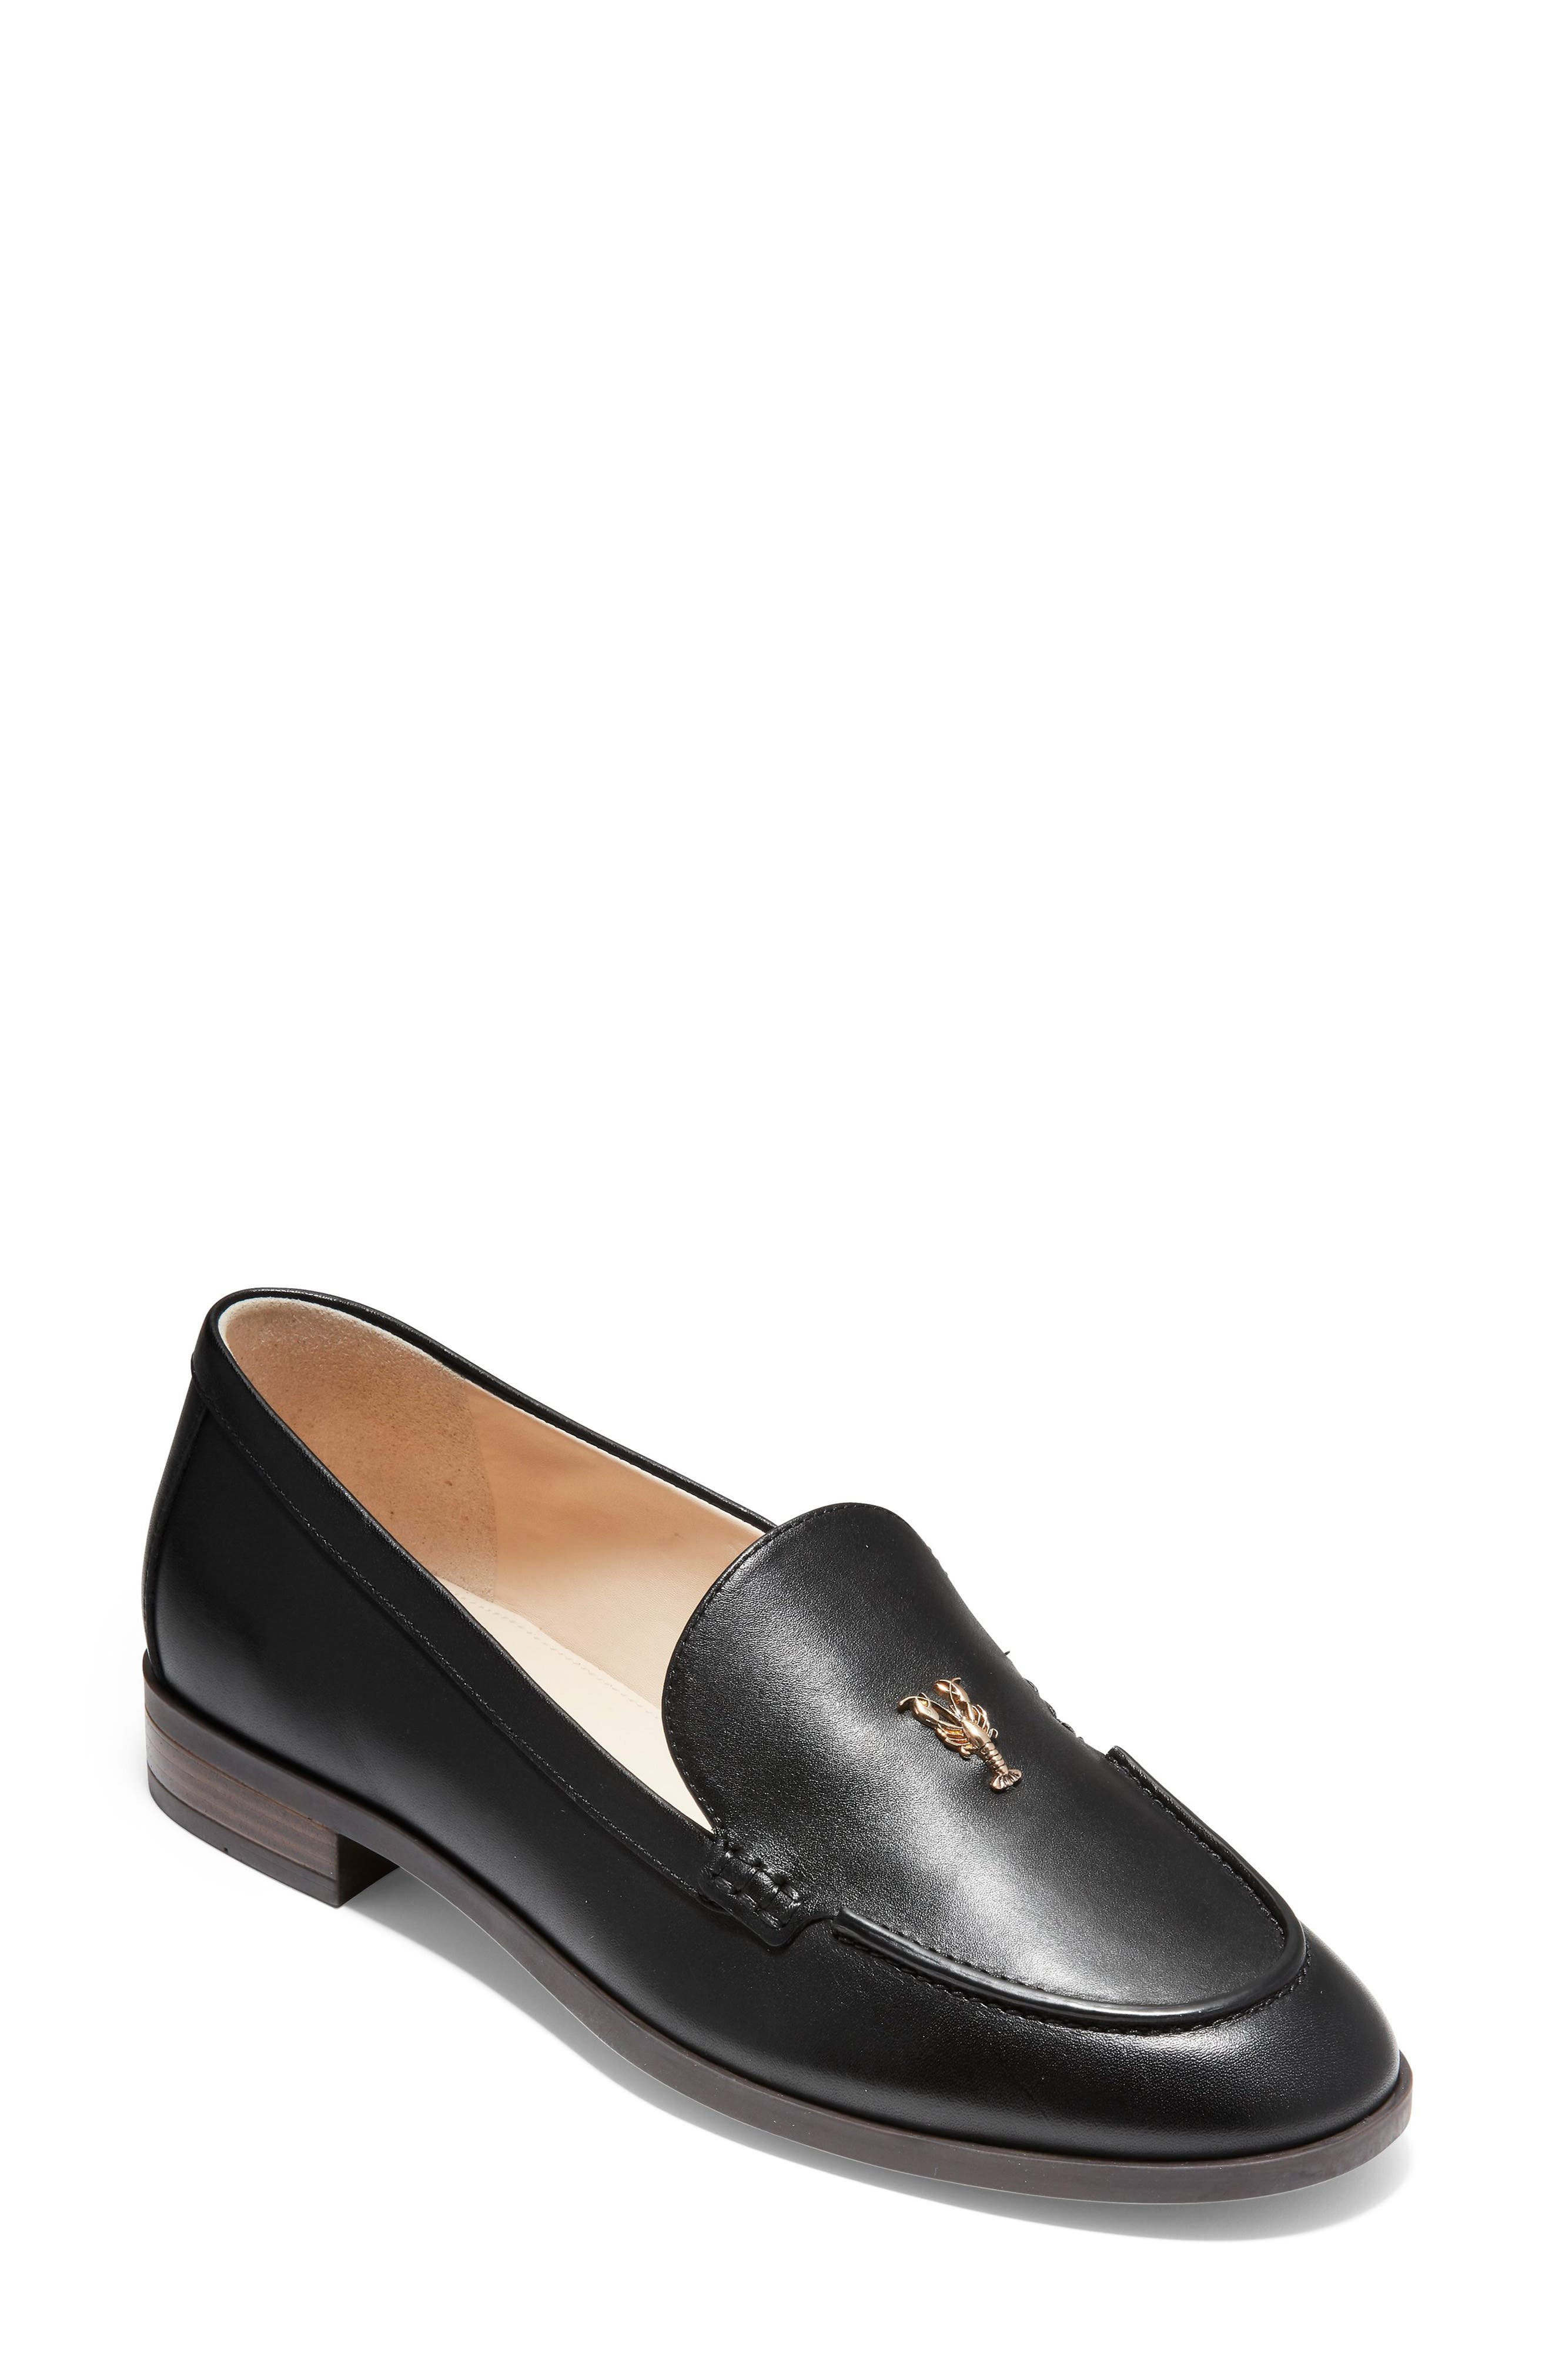 Pinch Lobster Loafer,                             Main thumbnail 1, color,